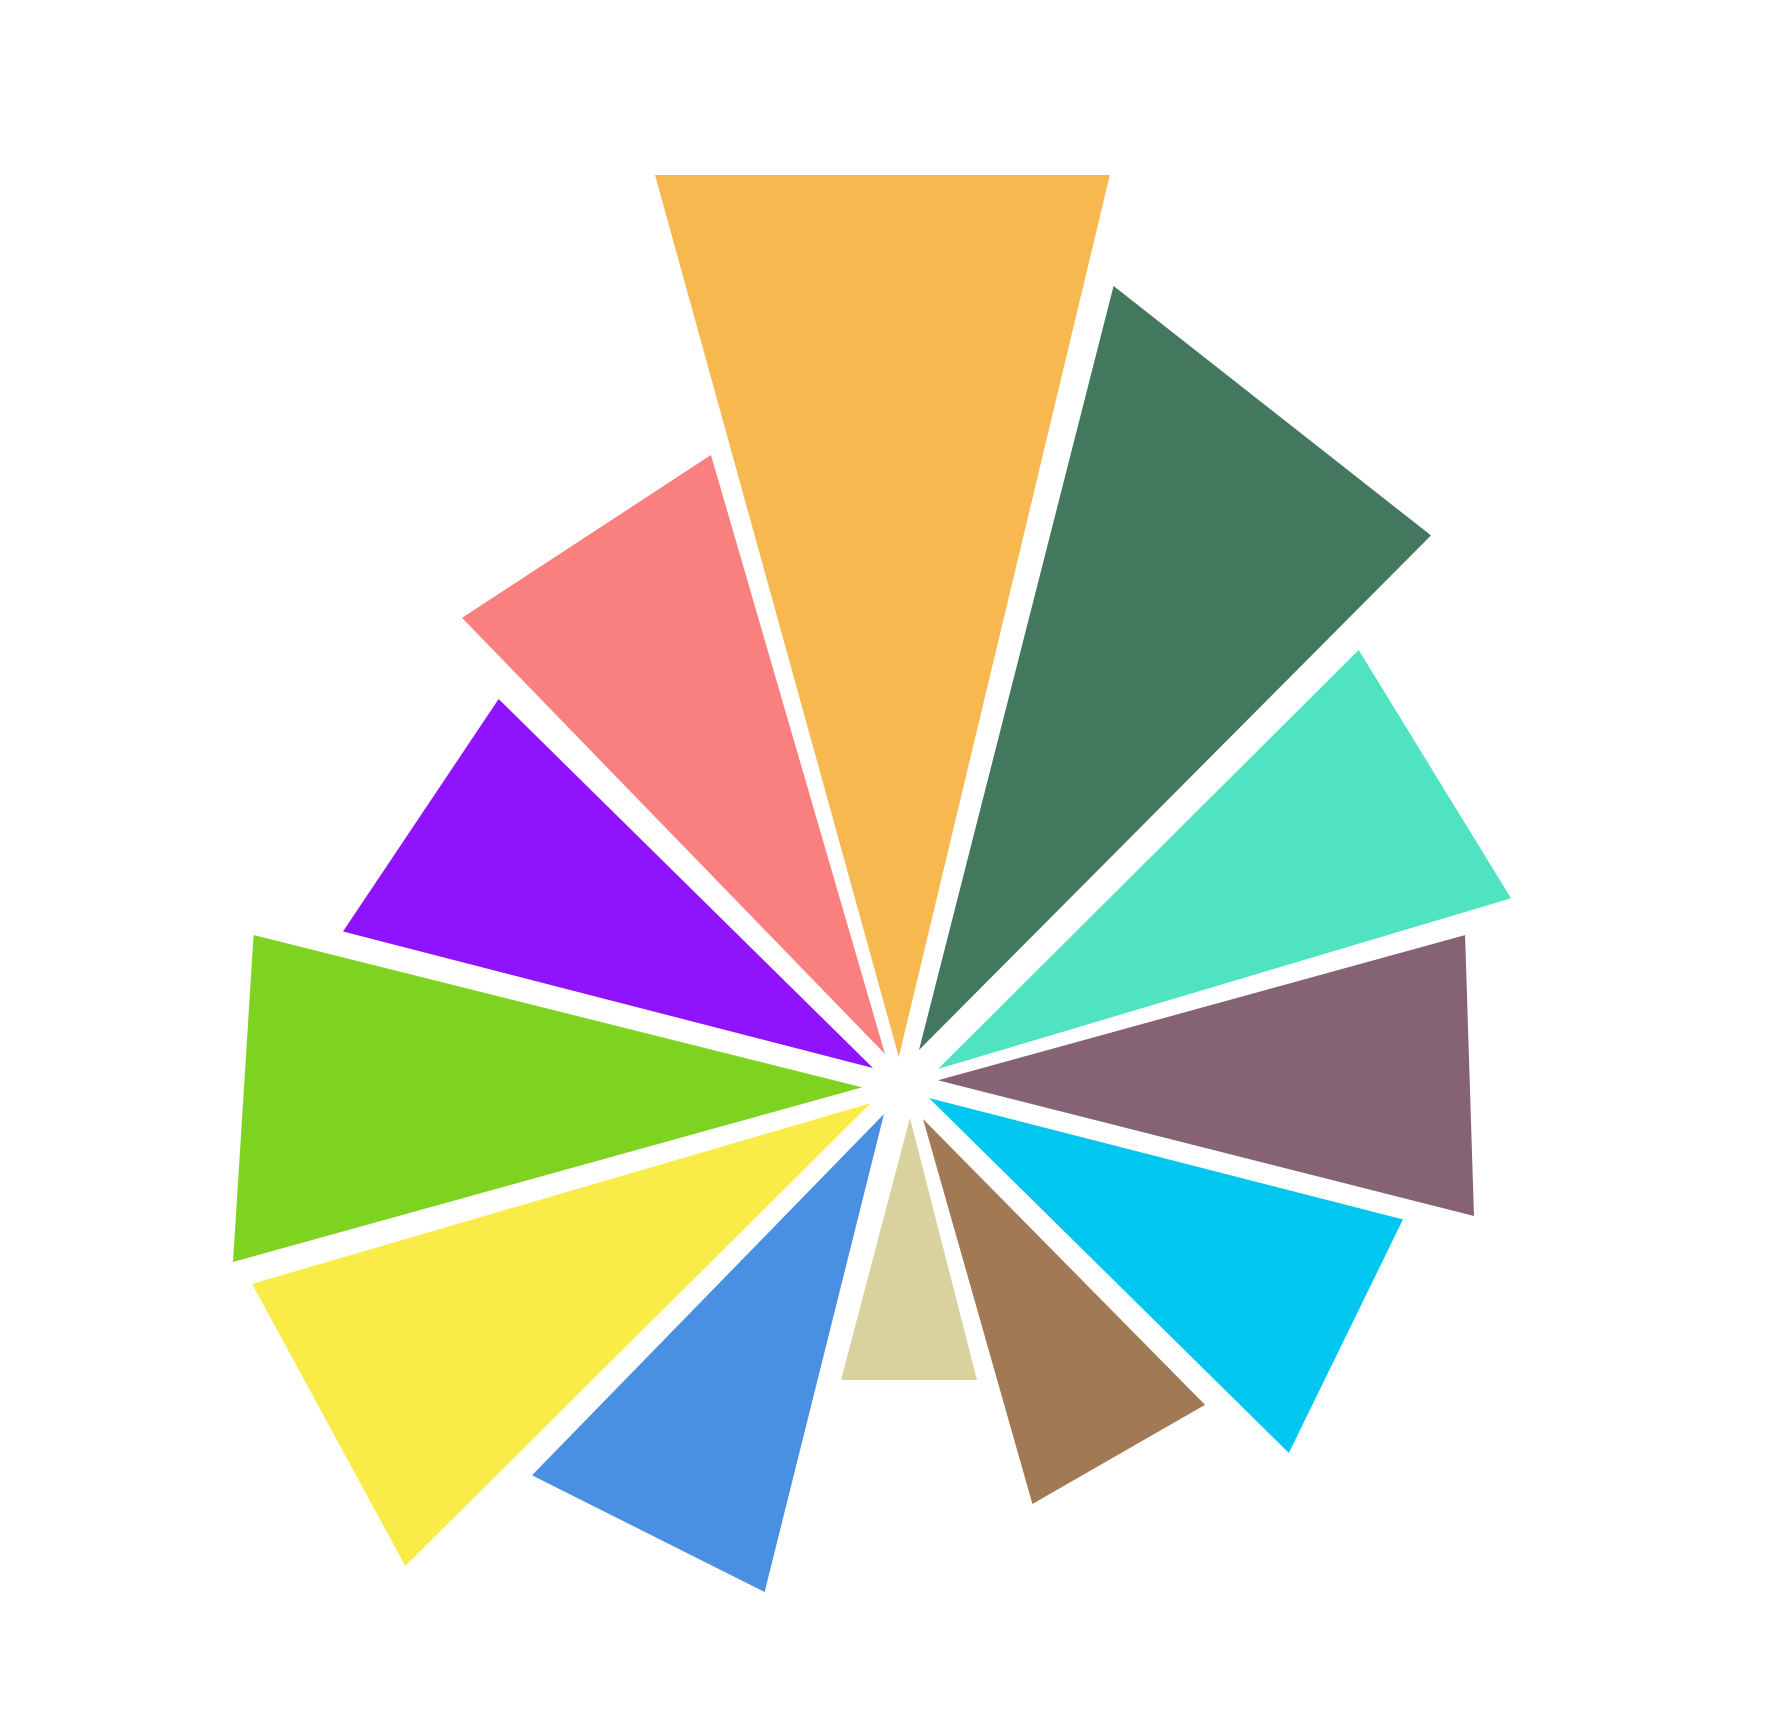 A 12-pointed star with the points pointing to the center. Each section, a different color.